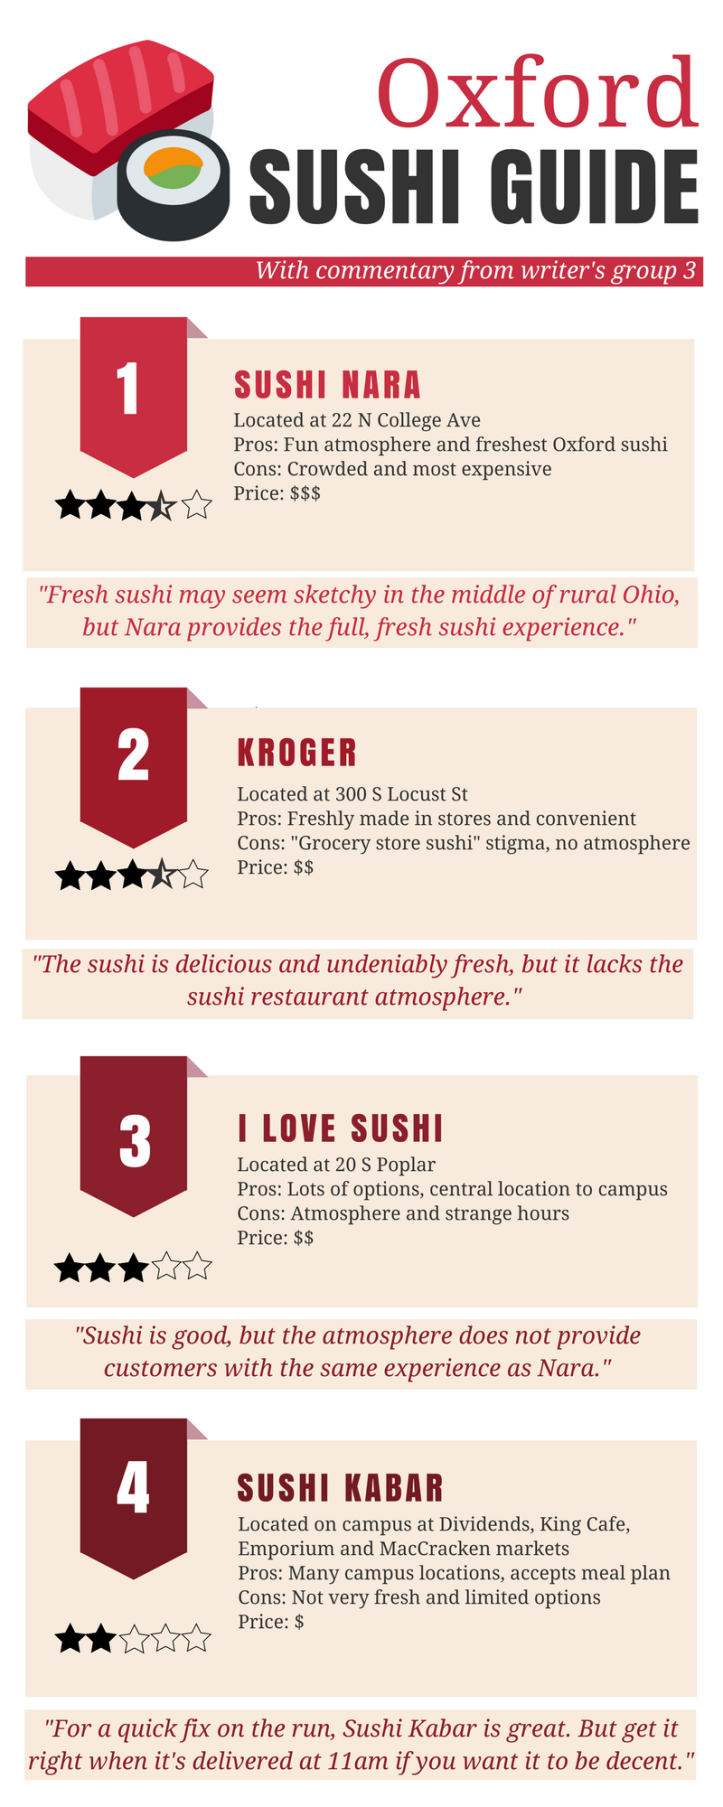 Oxford Sushi guide